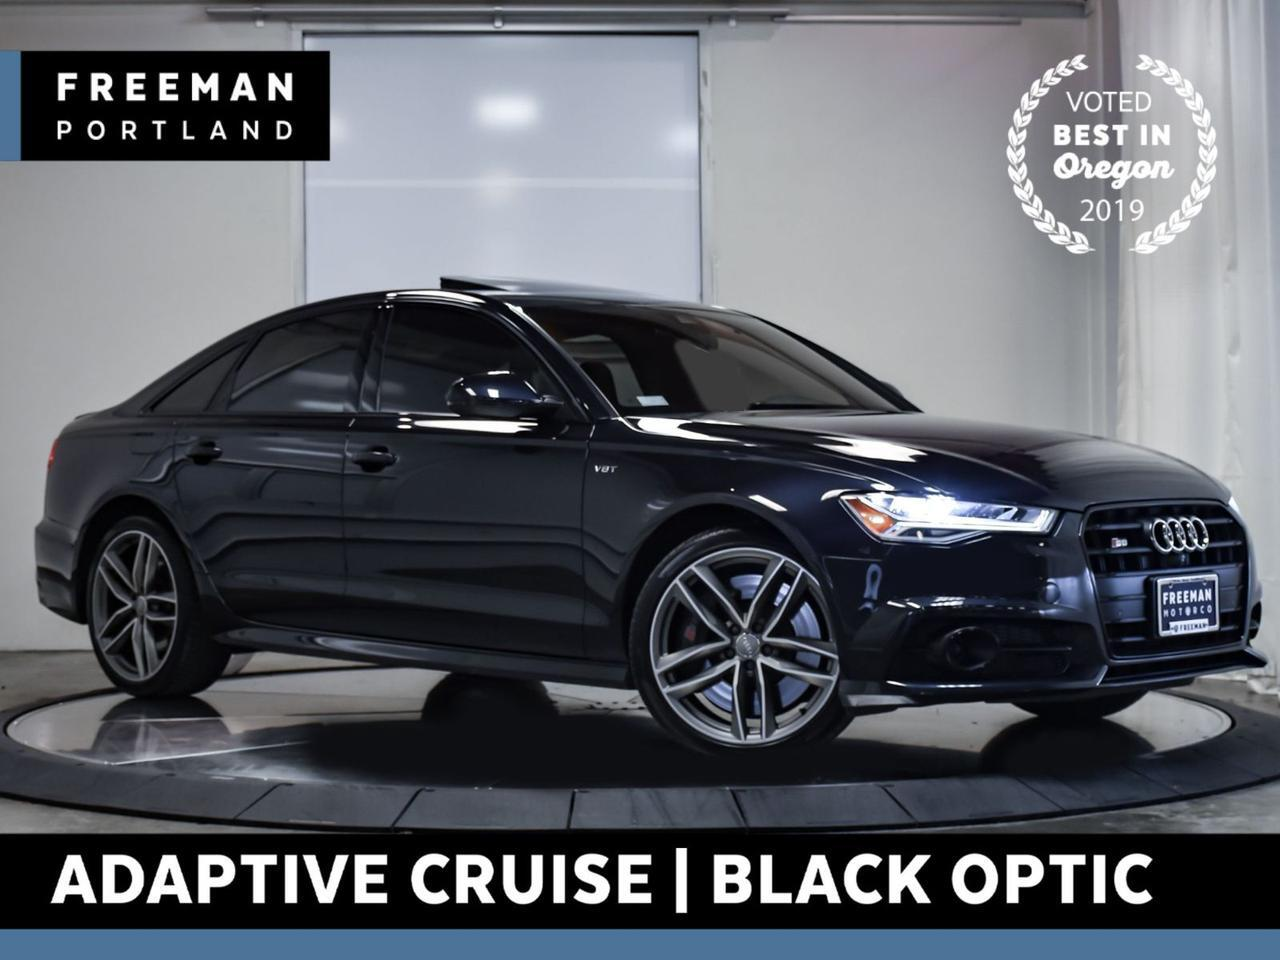 2017 Audi S6 Premium Plus quattro Adaptive Cruise Black Optic Portland OR